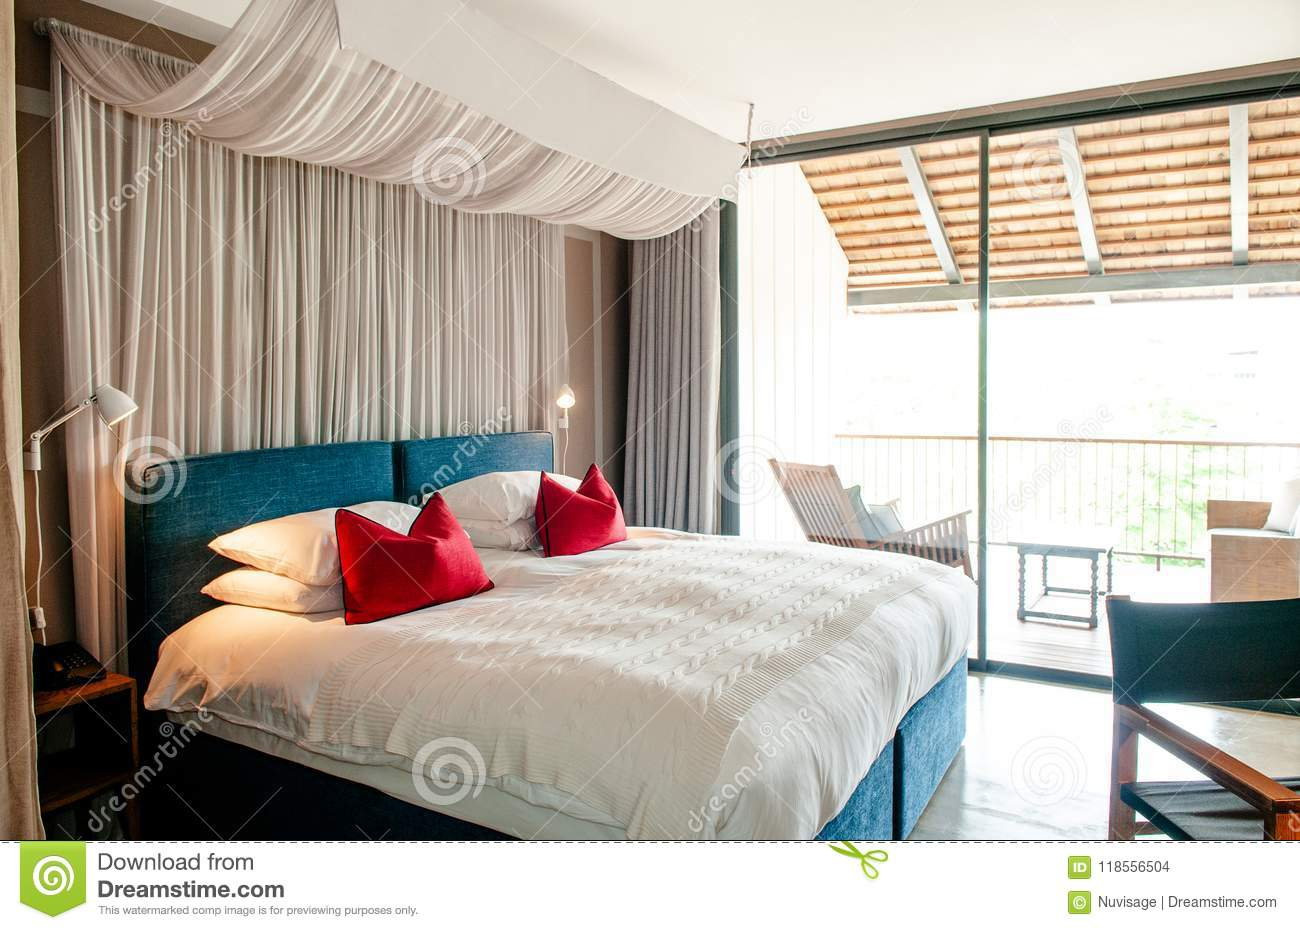 Colonial Style Bedroom Wooden Bed With Curtain Pillows And Lamp Editorial Stock Image Image Of Domestic Architecture 118556504